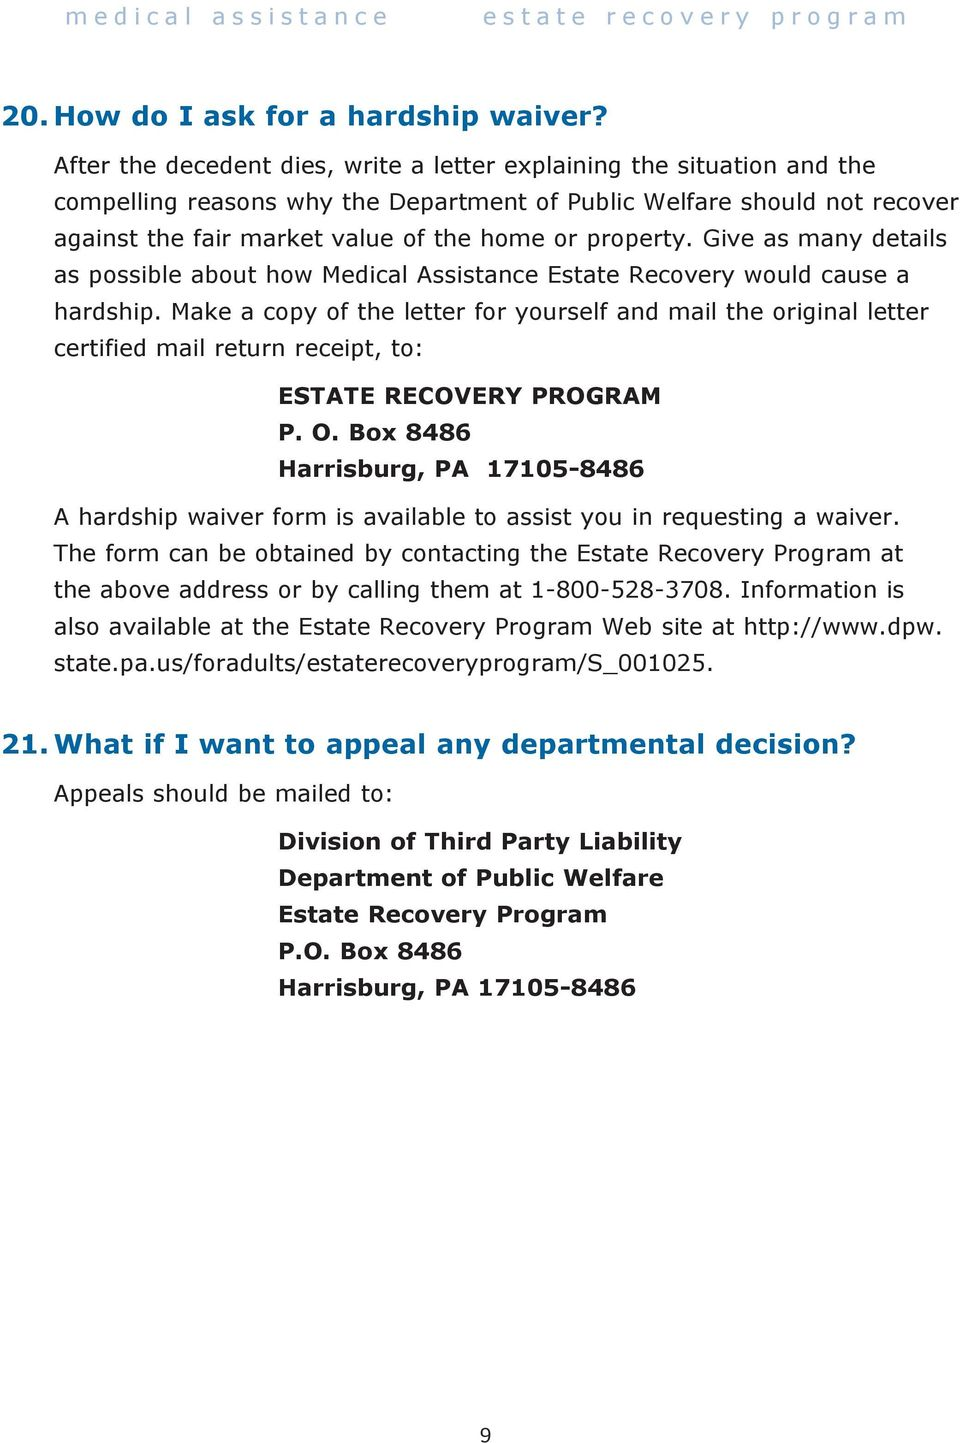 property. Give as many details as possible about how Medical Assistance Estate Recovery would cause a hardship.